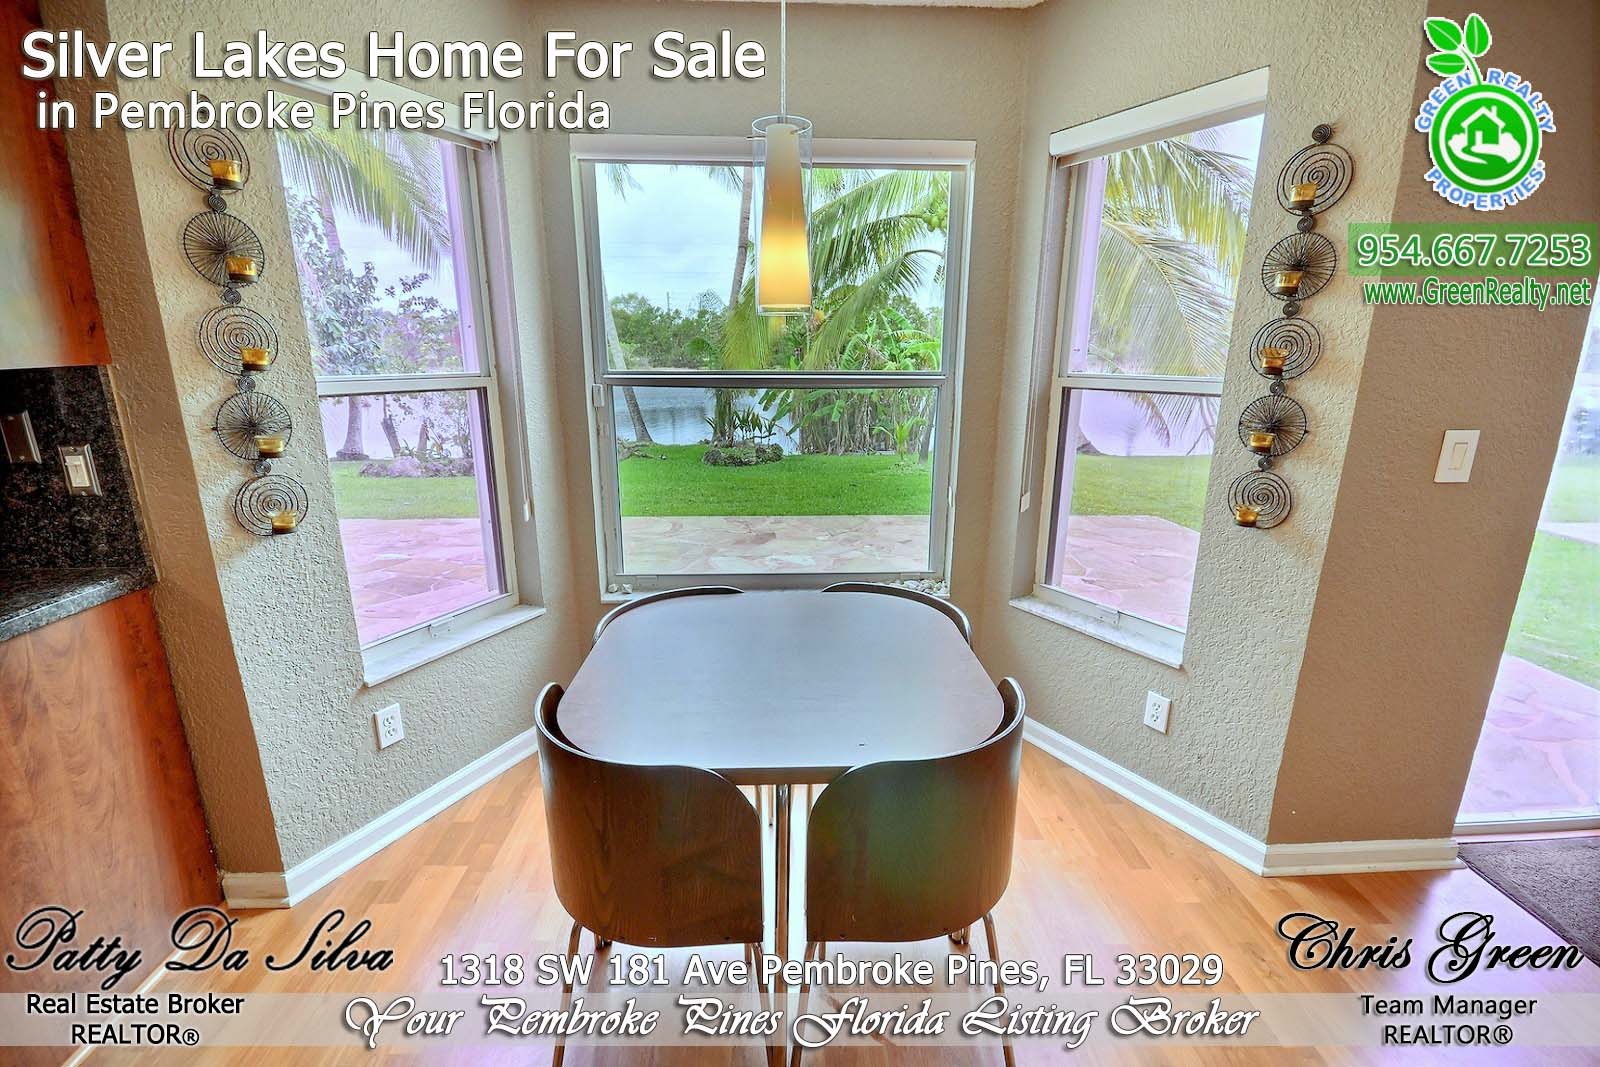 11 Silver Lakes Homes For Sale (3)